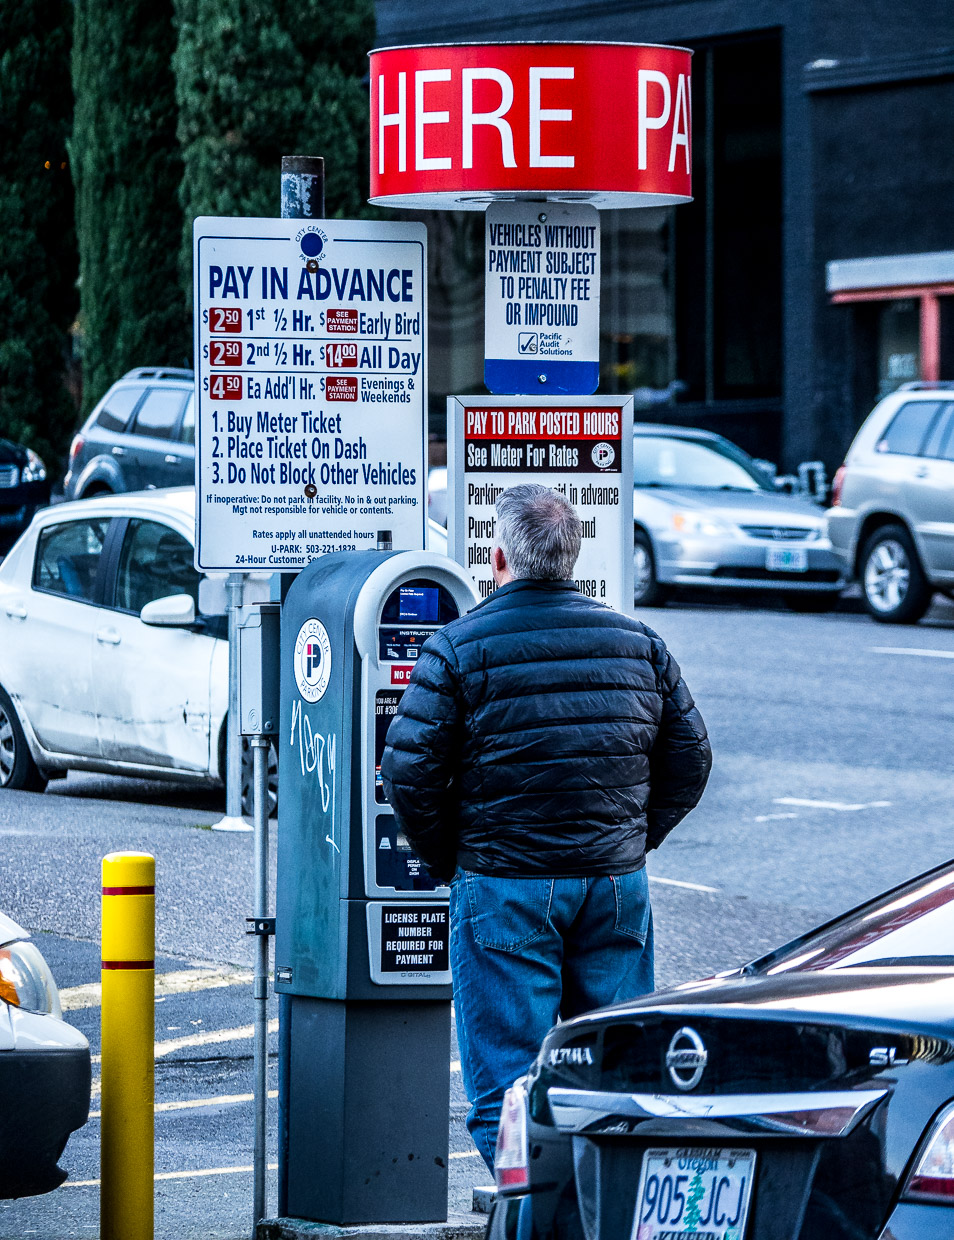 Man standing in front of park meter seemingly lost with the instructions